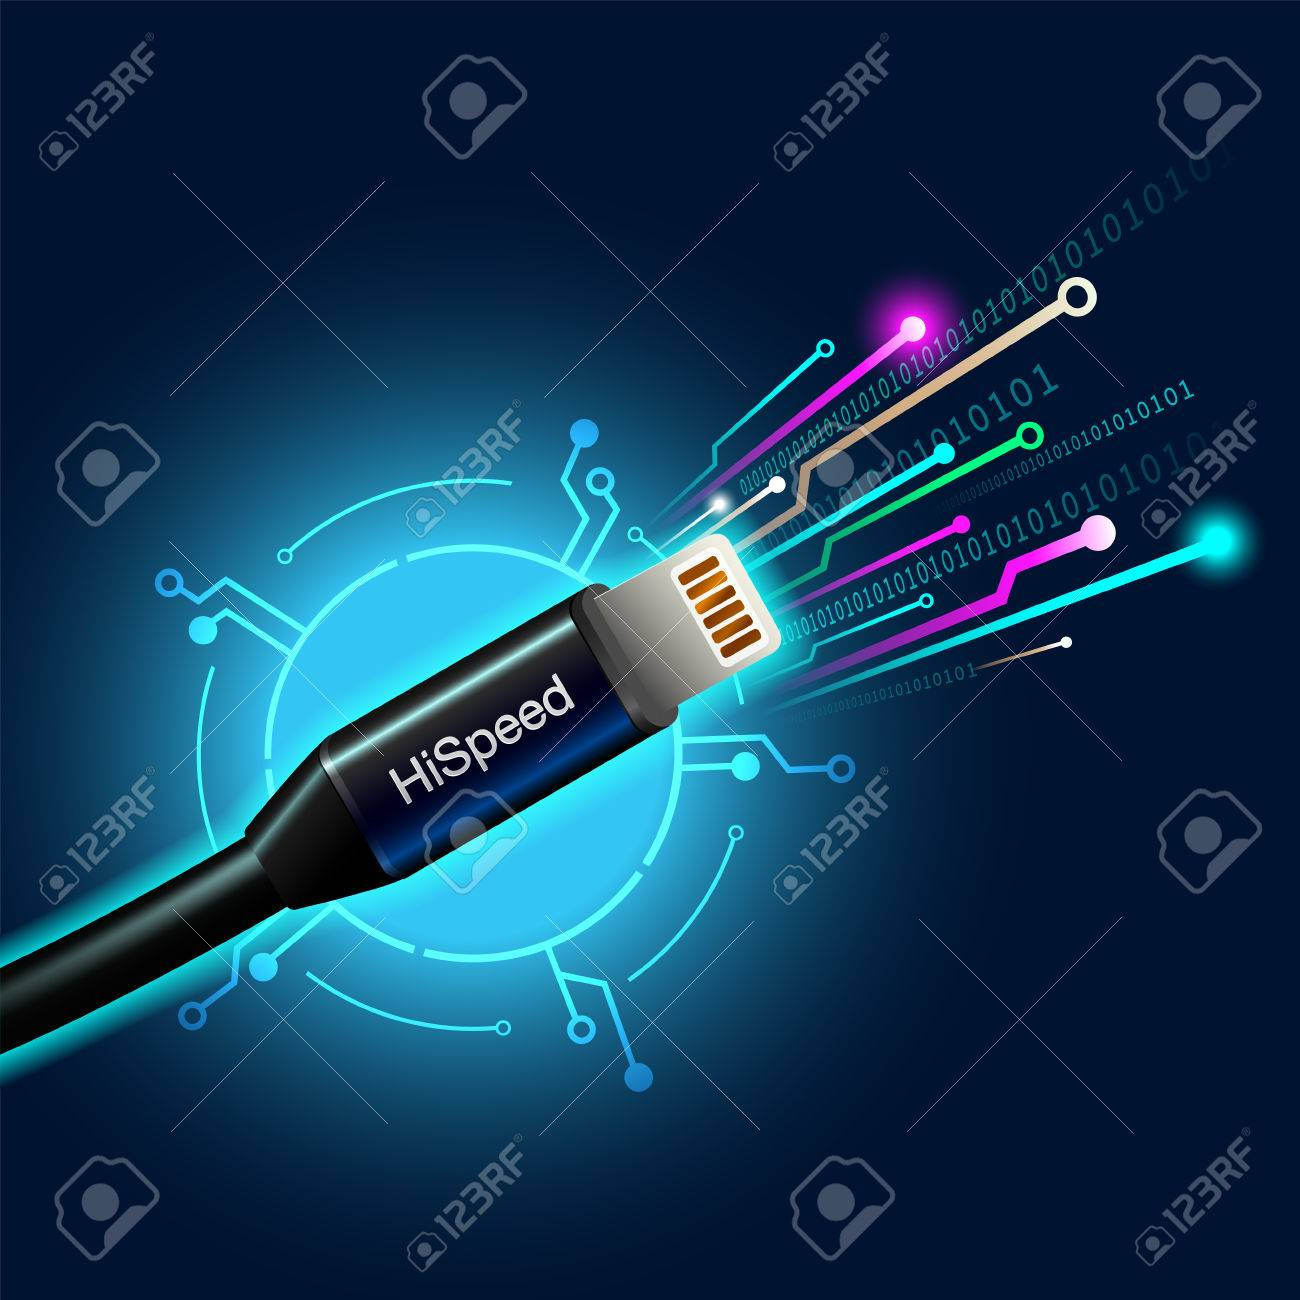 Cable high speed internet  Broadband fiber optic cable connection